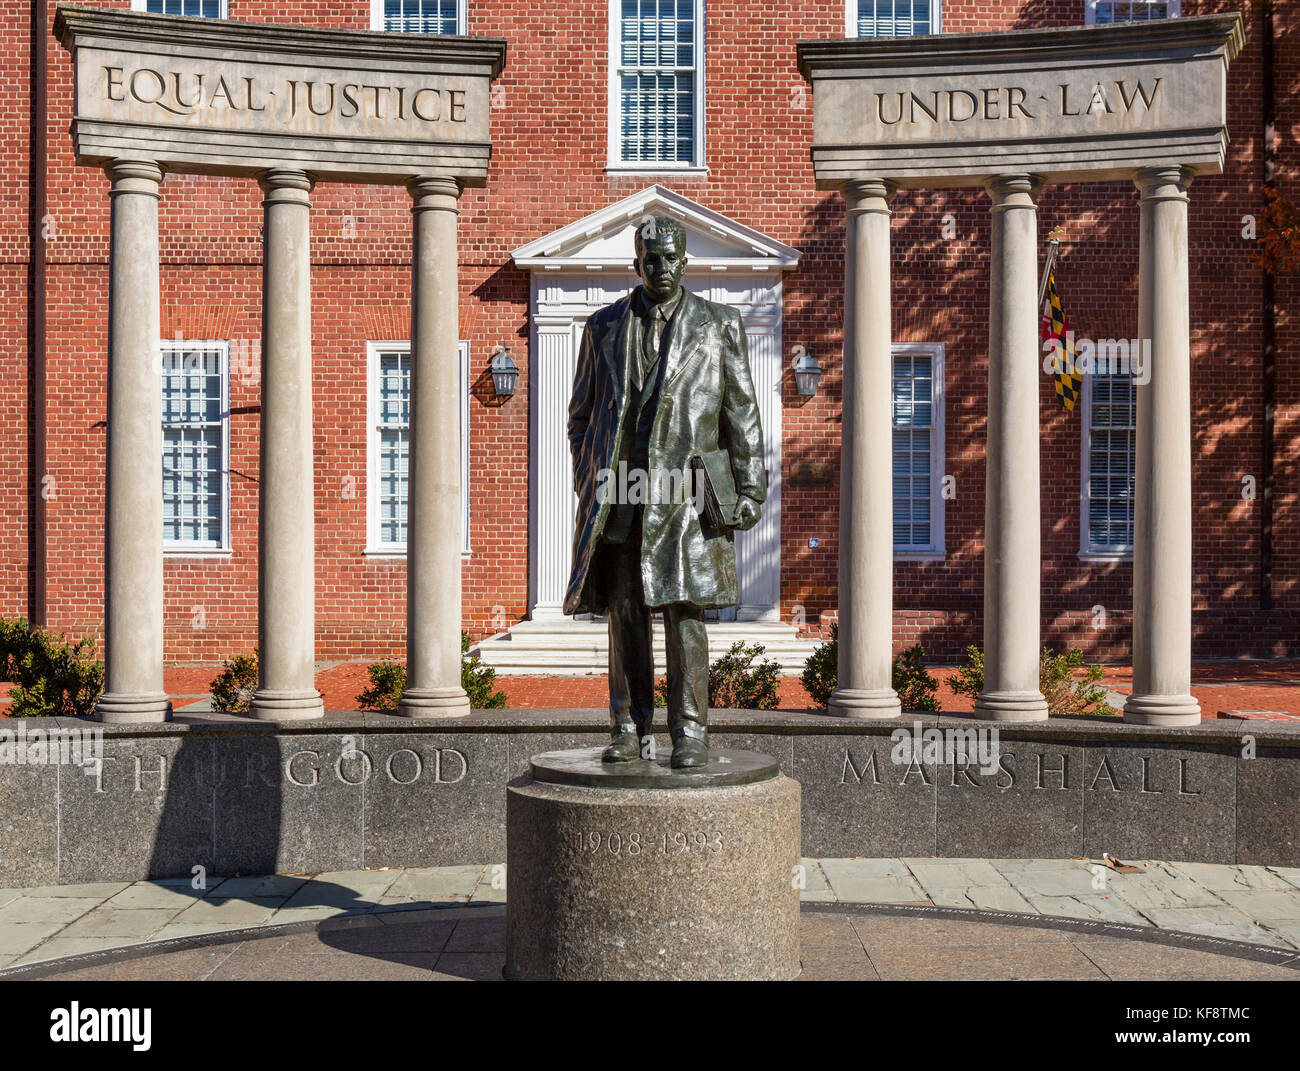 Statue of the supreme court justice Thurgood Marshall, Lawyers Mall, Annapolis, Maryland, USA - Stock Image